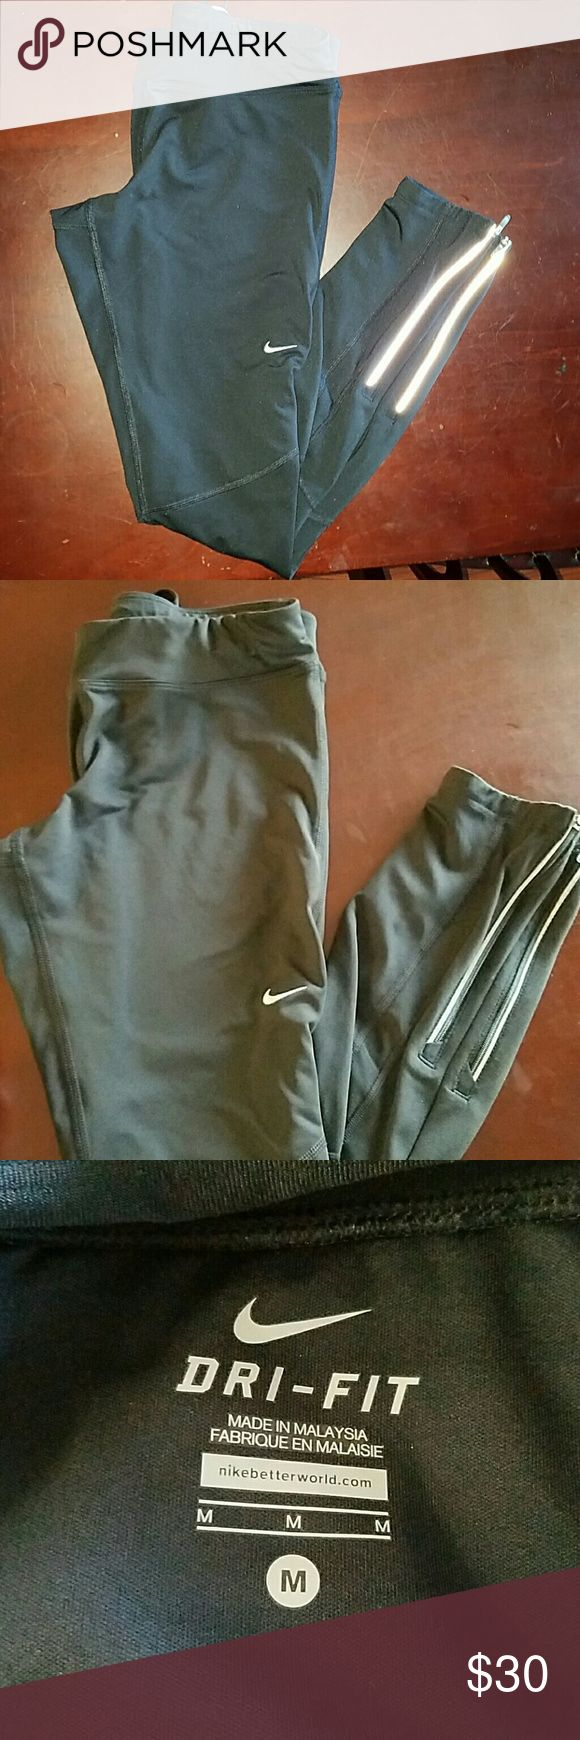 Dri-fit Nike running pants They also have a back pocket to carry a phone Nike Pants Track Pants & Joggers